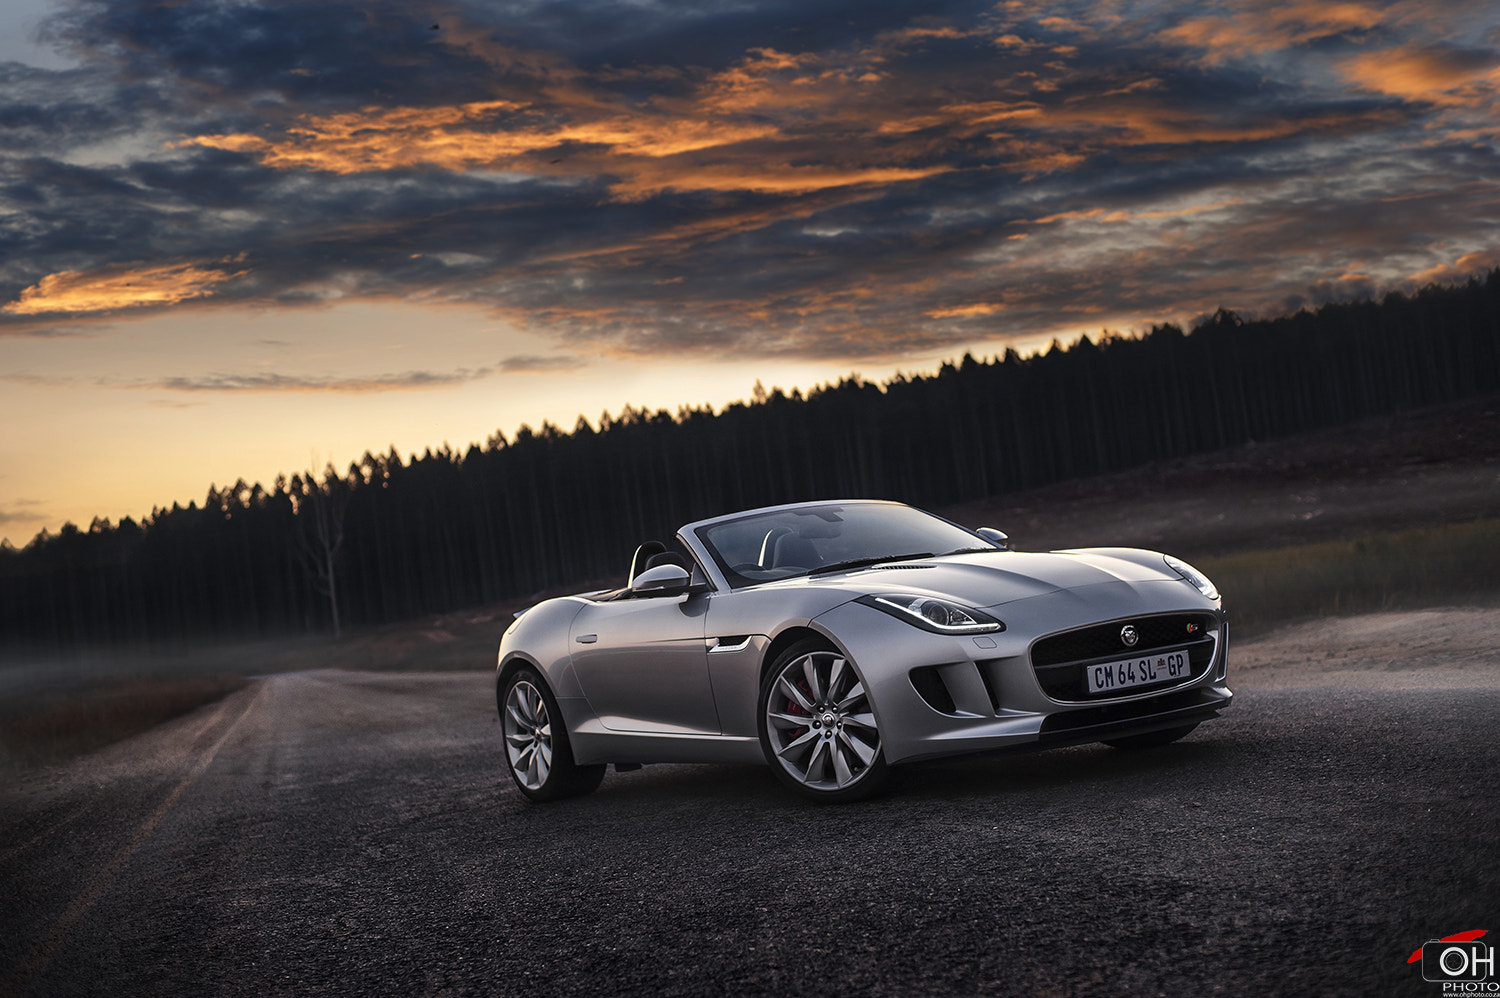 Photograph Jaguar F-Type V6S 'Sunset' by Oliver H on 500px